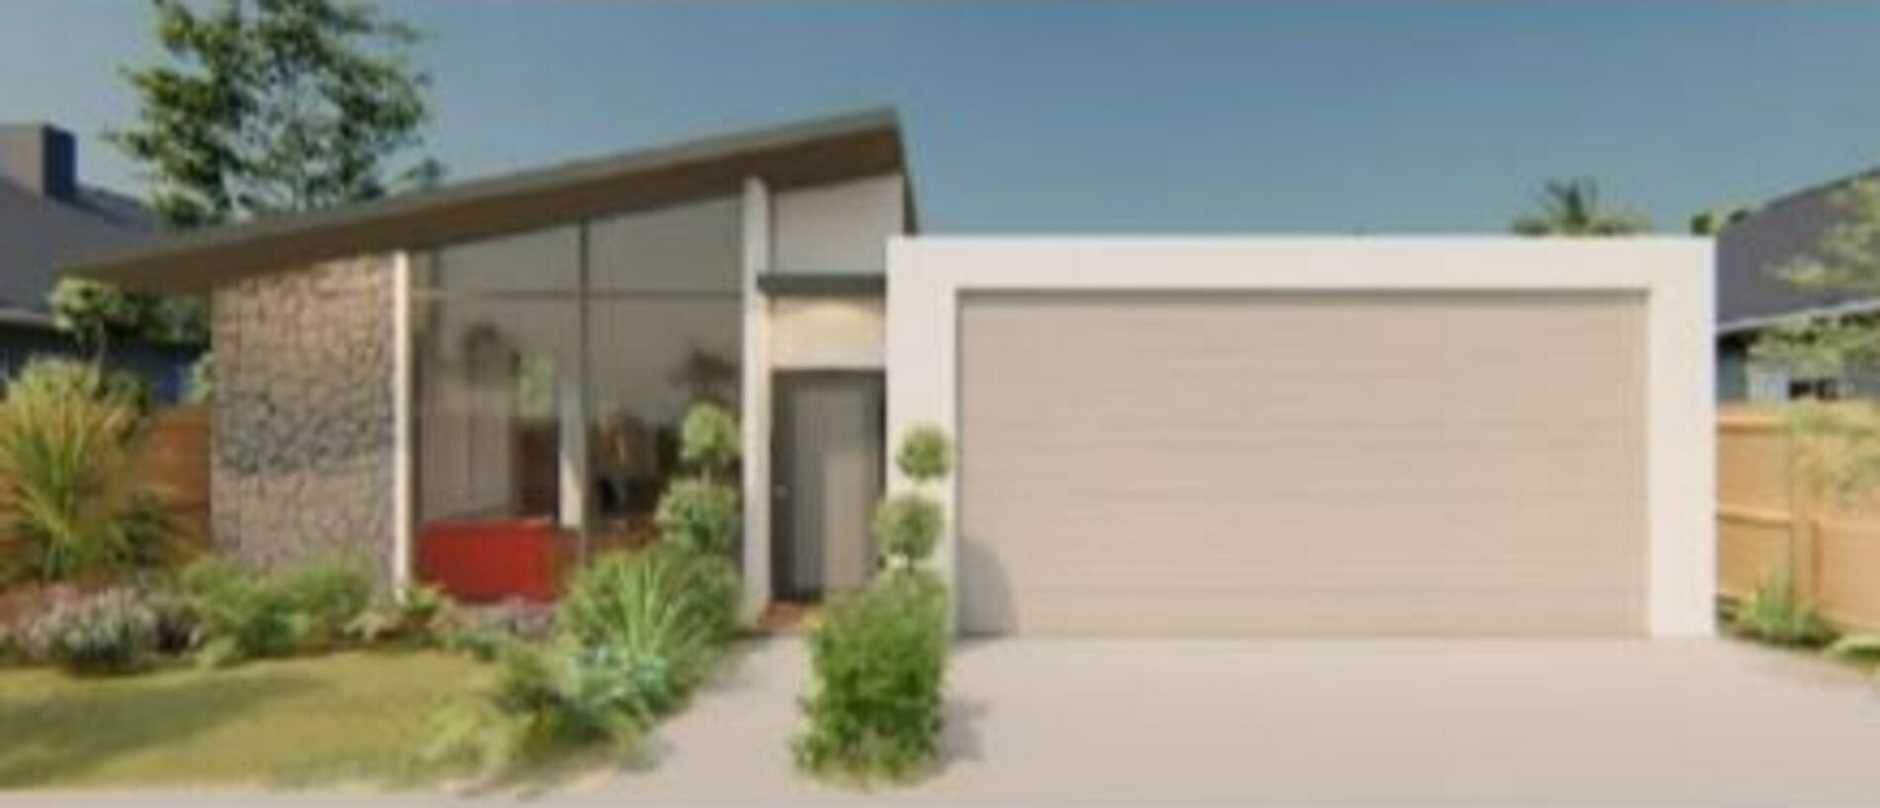 Concept designs for the Hervey Bay RSL's proposed residential development on Beach Rd, Urraween.